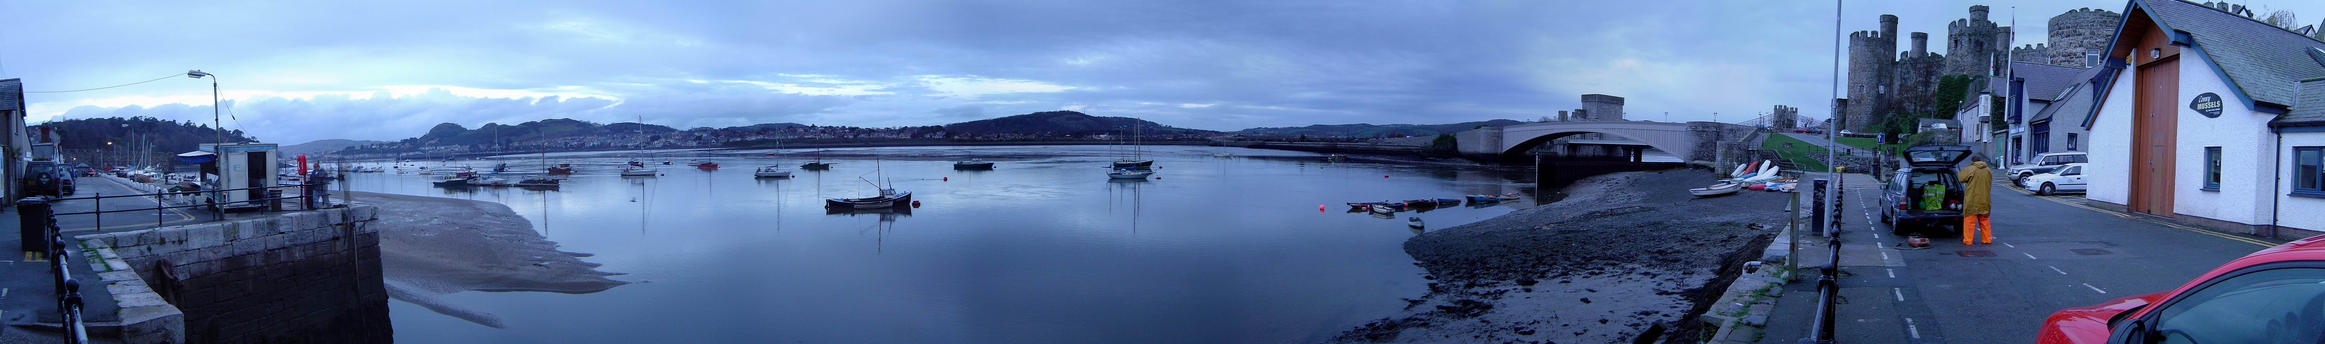 conwy, wales by peHa